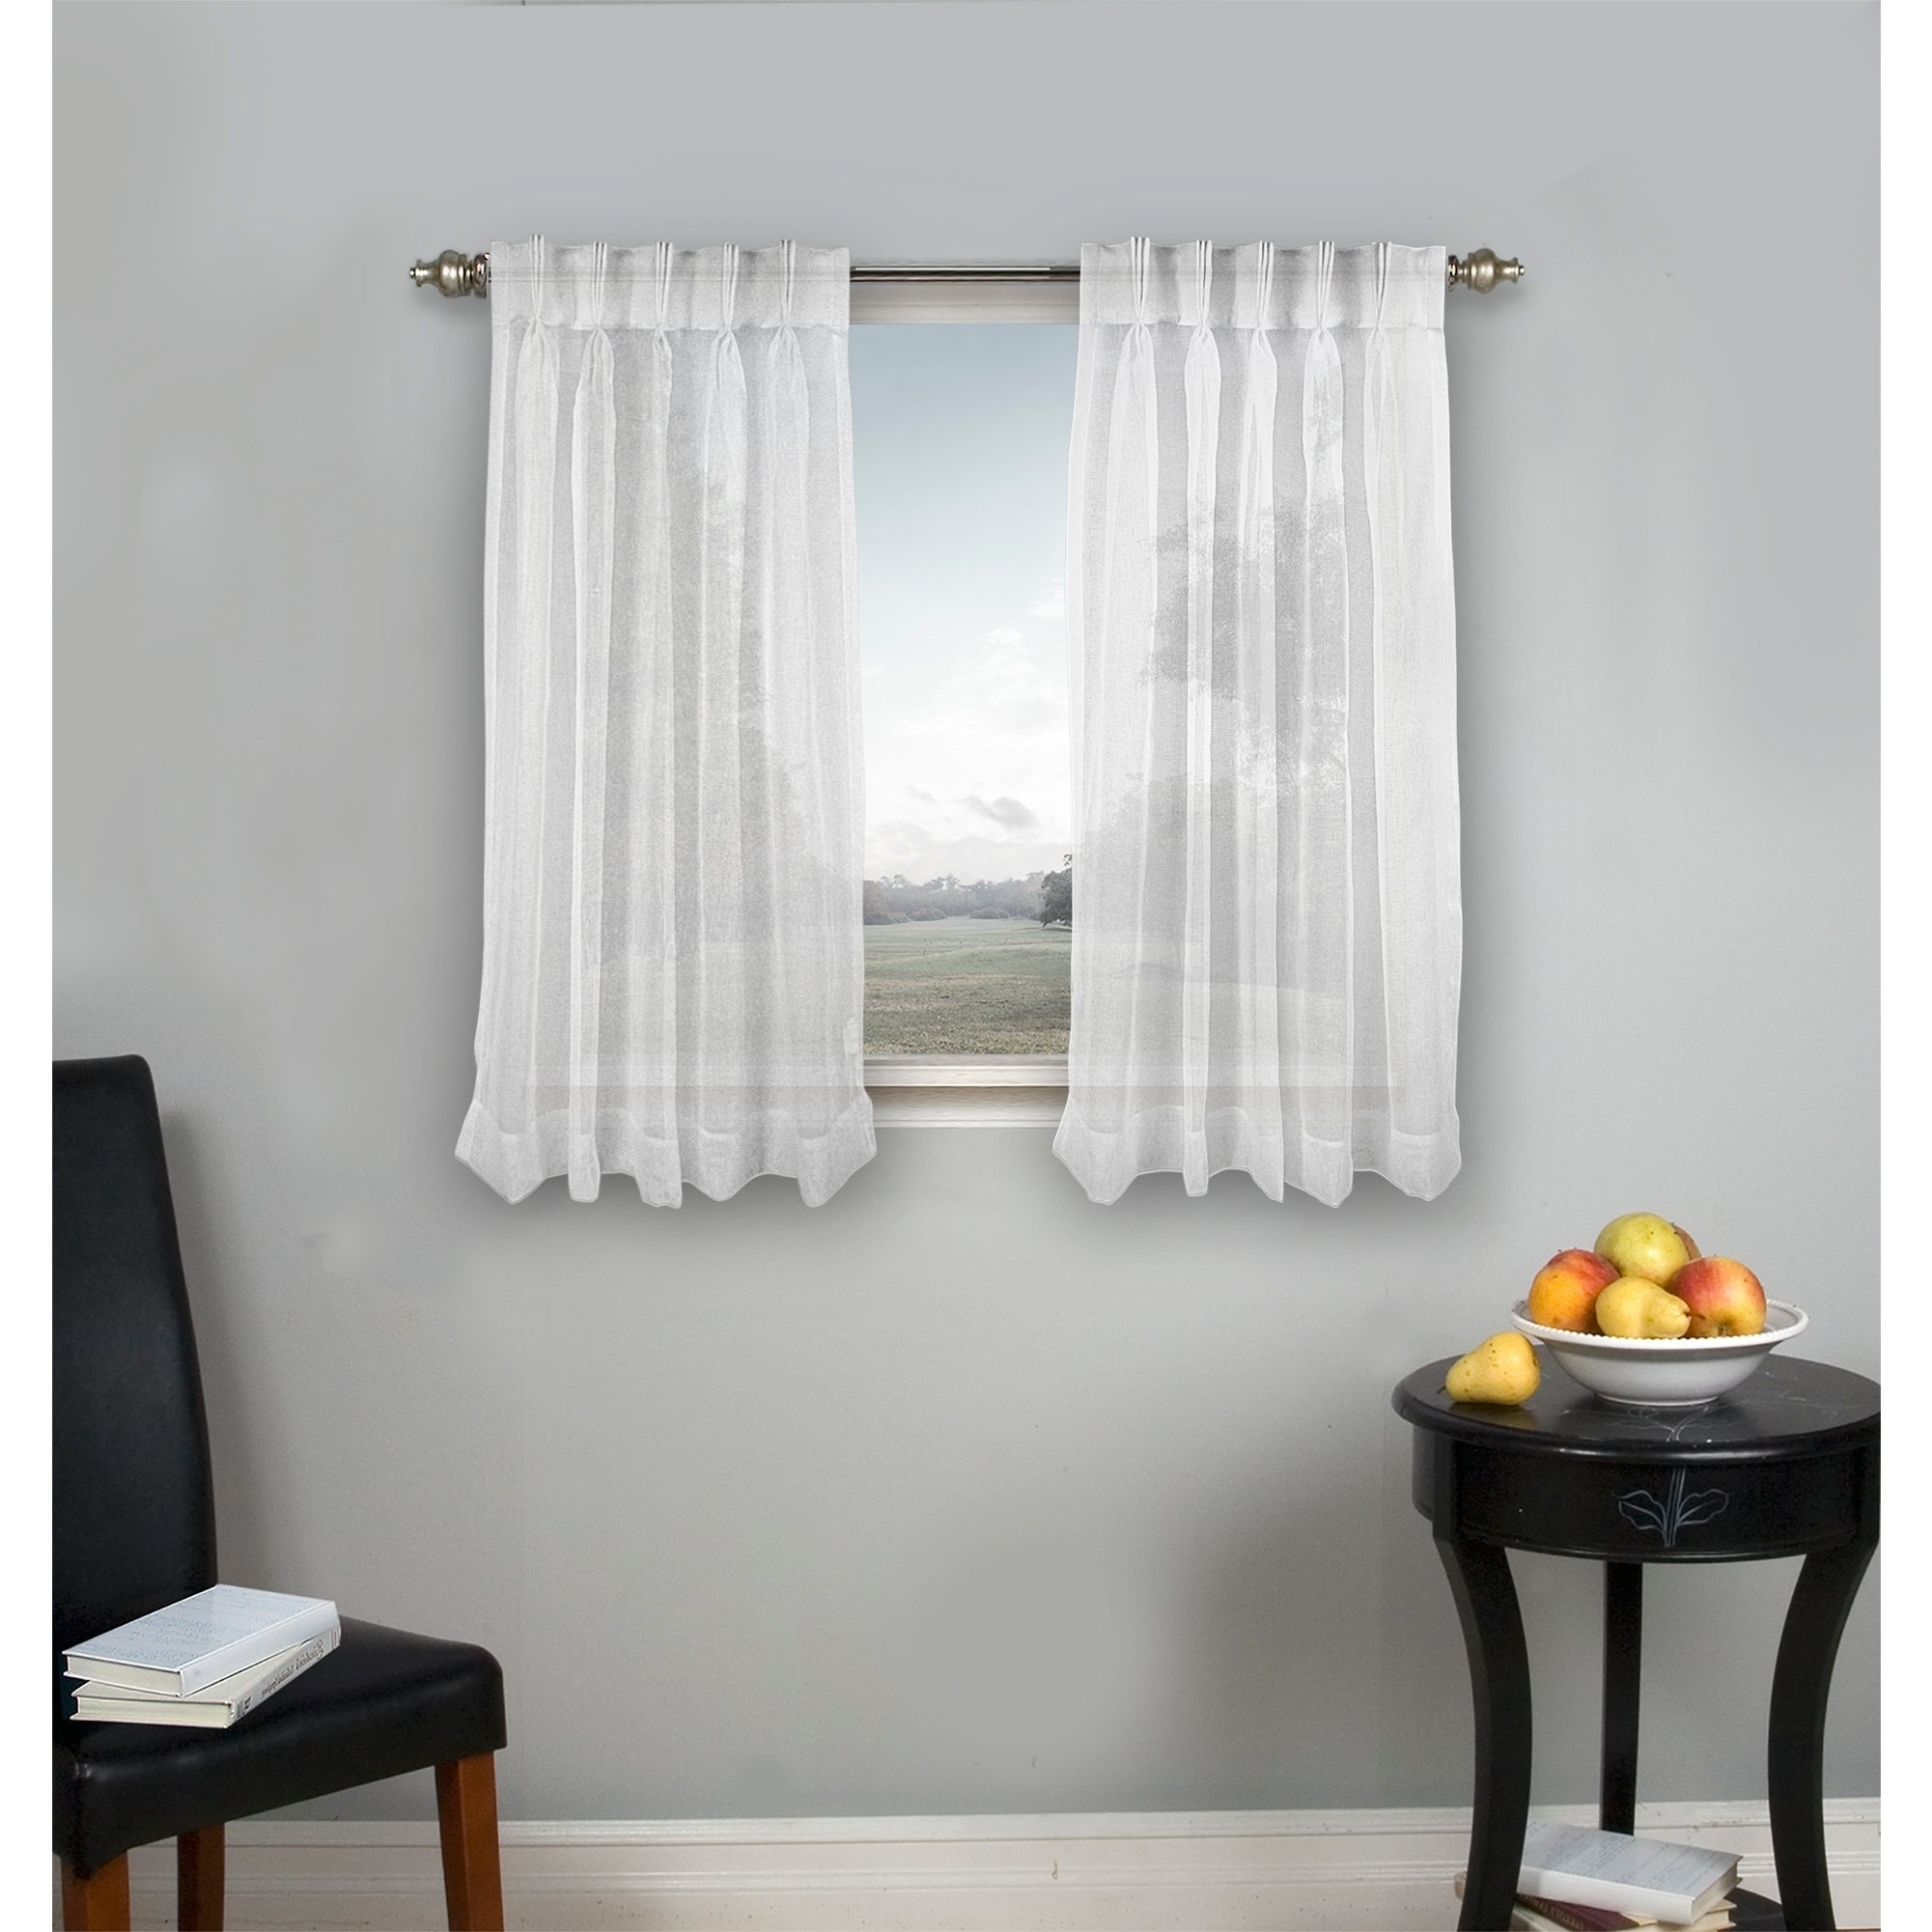 Most Recent Palm Beach Pinch Pleated Top With Back Tabs Short Curtain Panel Pair For Classic Hotel Quality Water Resistant Fabric Curtains Set With Tiebacks (Gallery 9 of 20)